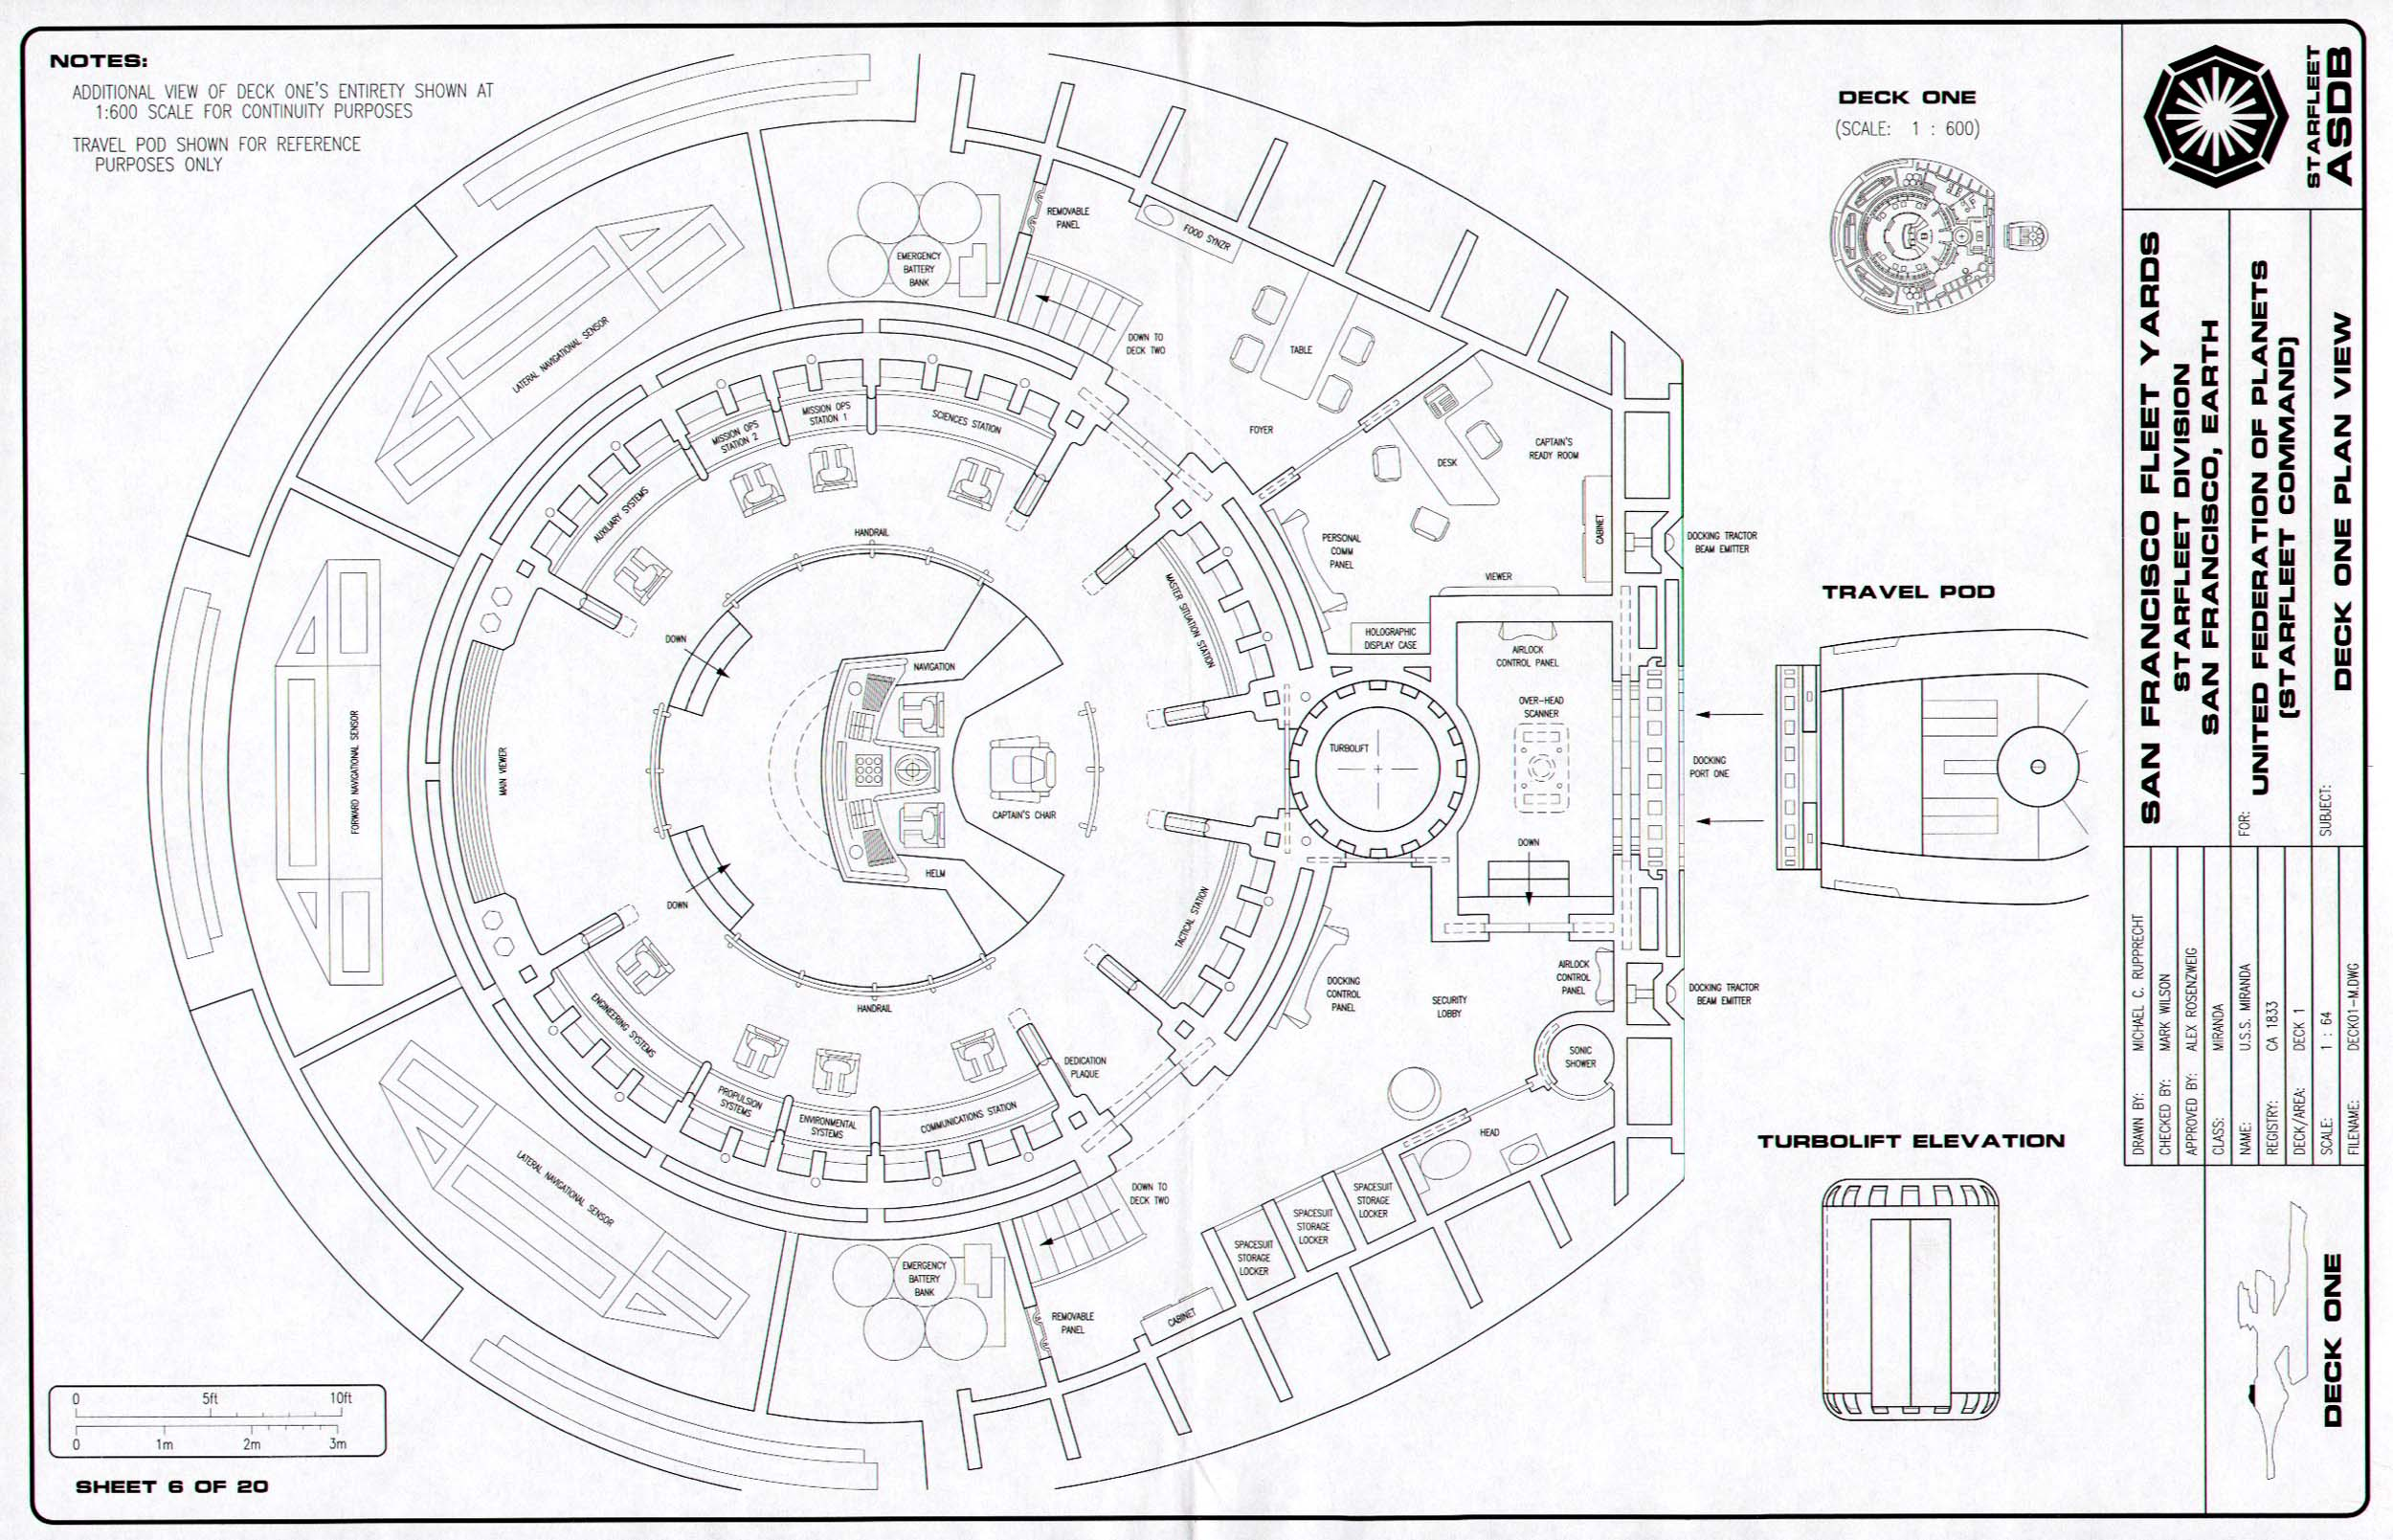 Star Trek Blueprints Miranda Class Cruiser General Plans